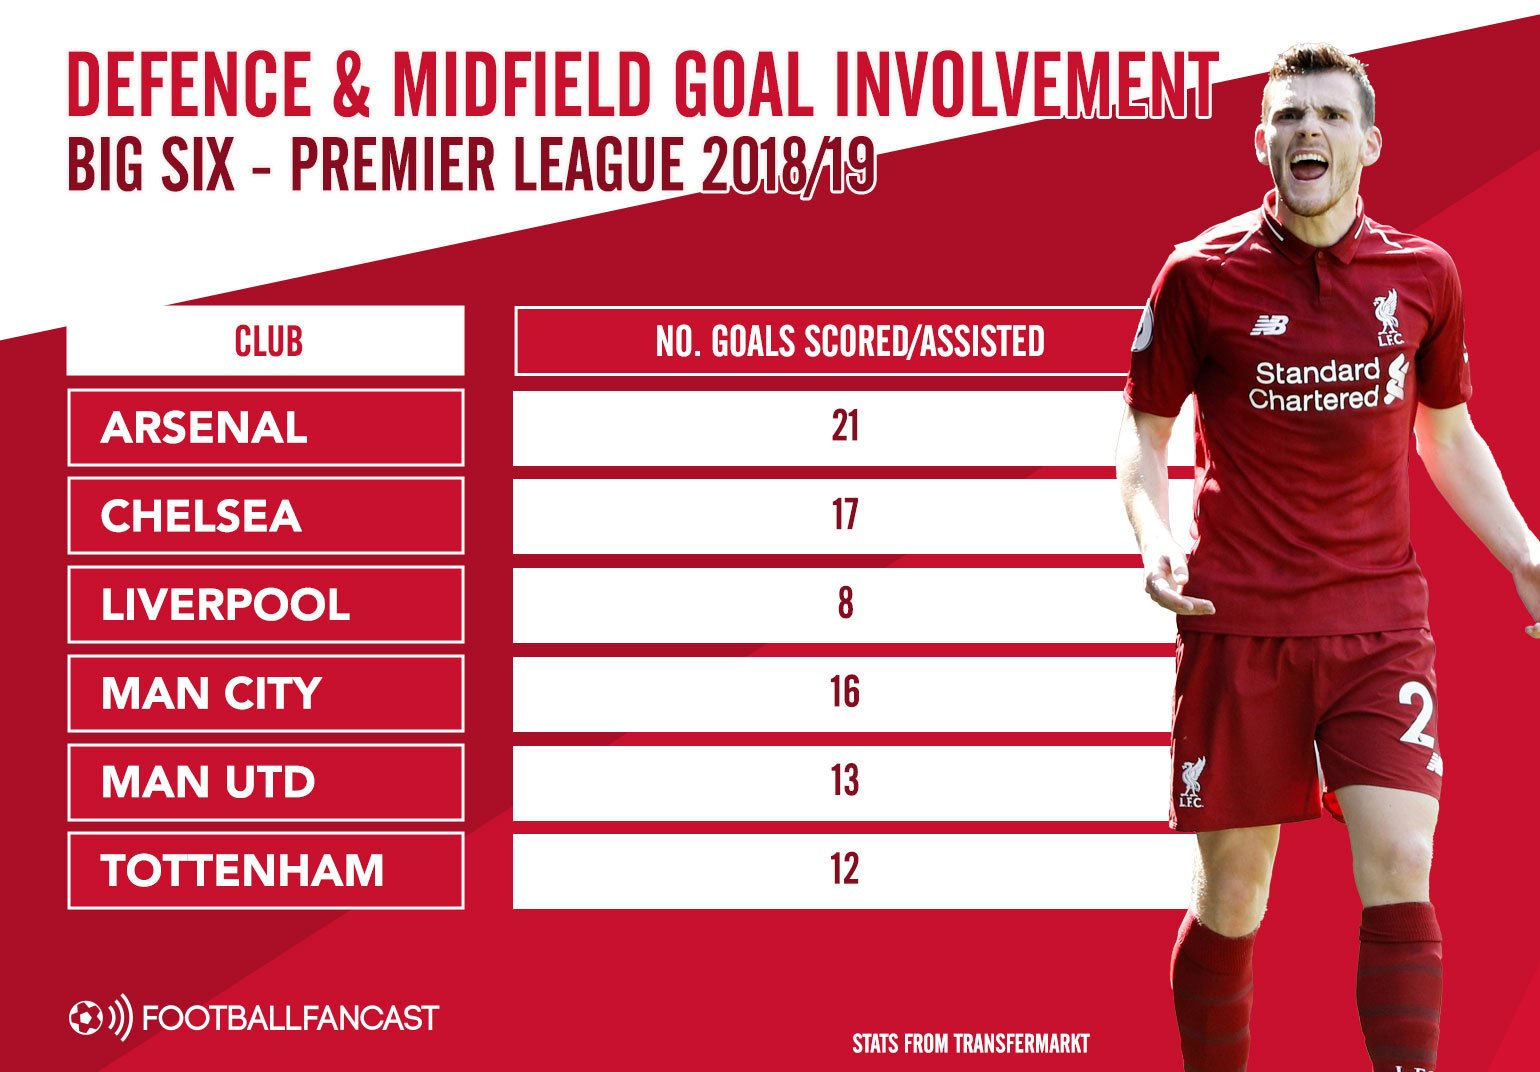 Goal Involvement from defence and midfield this season